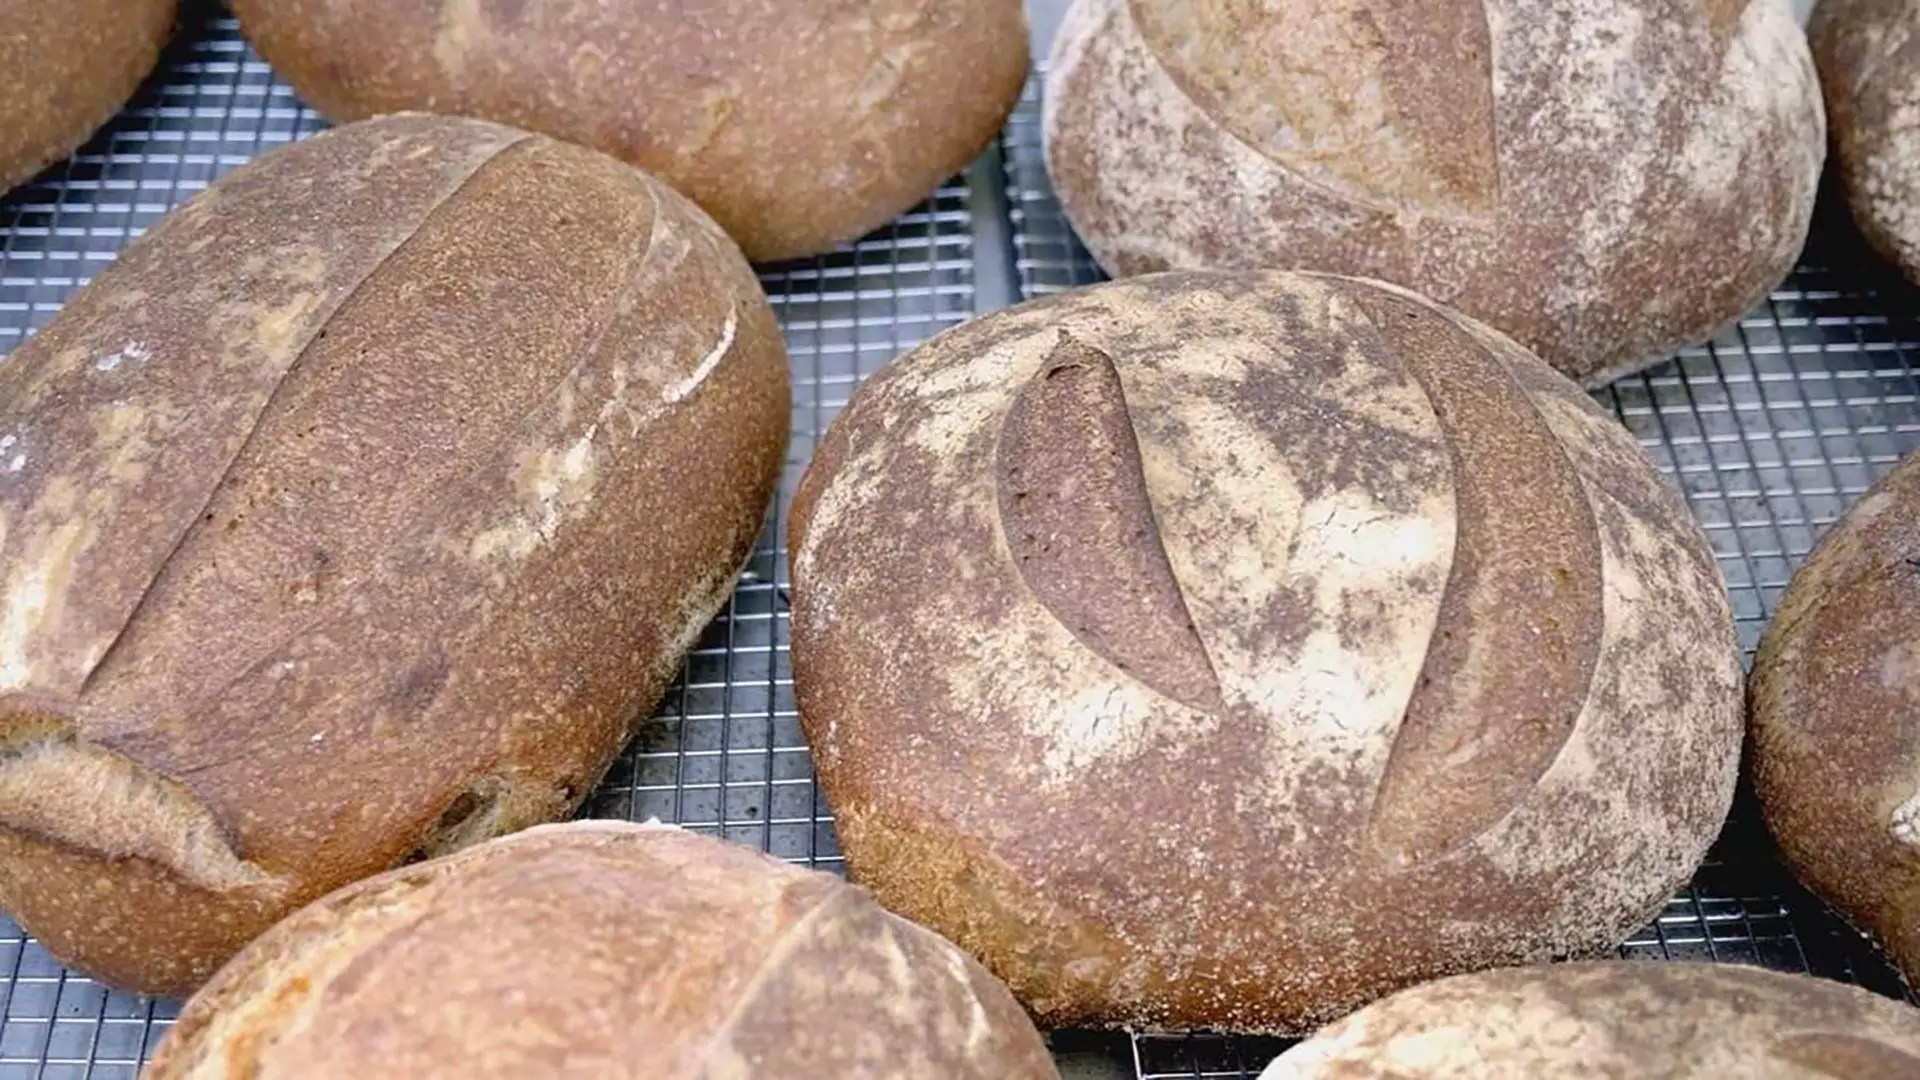 A group of freshly baked bread.